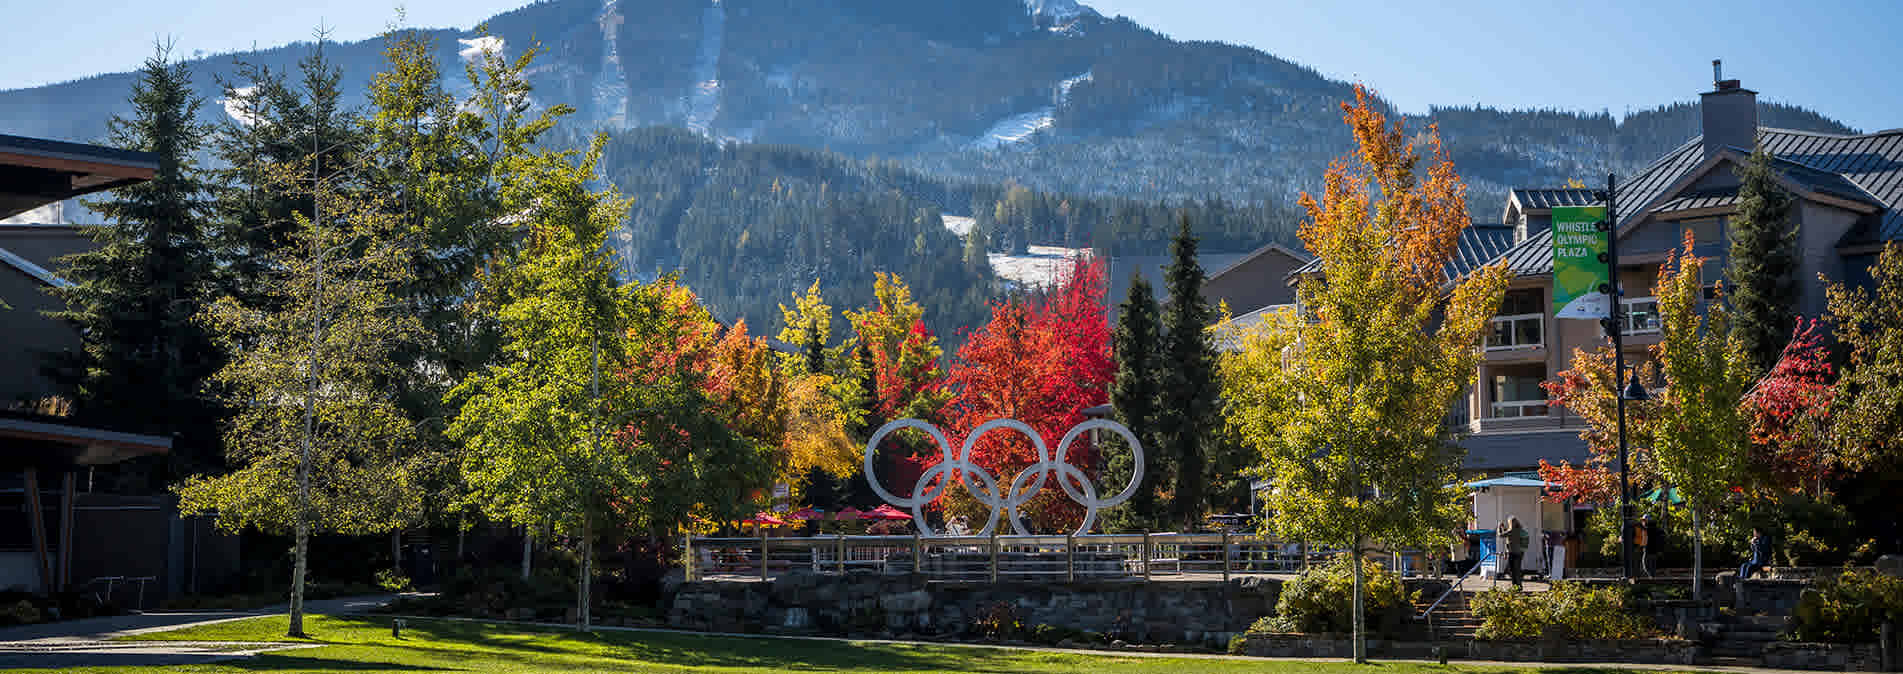 Whistler Olympic Plaza in Whistler Village in the fall, Whistler Canada